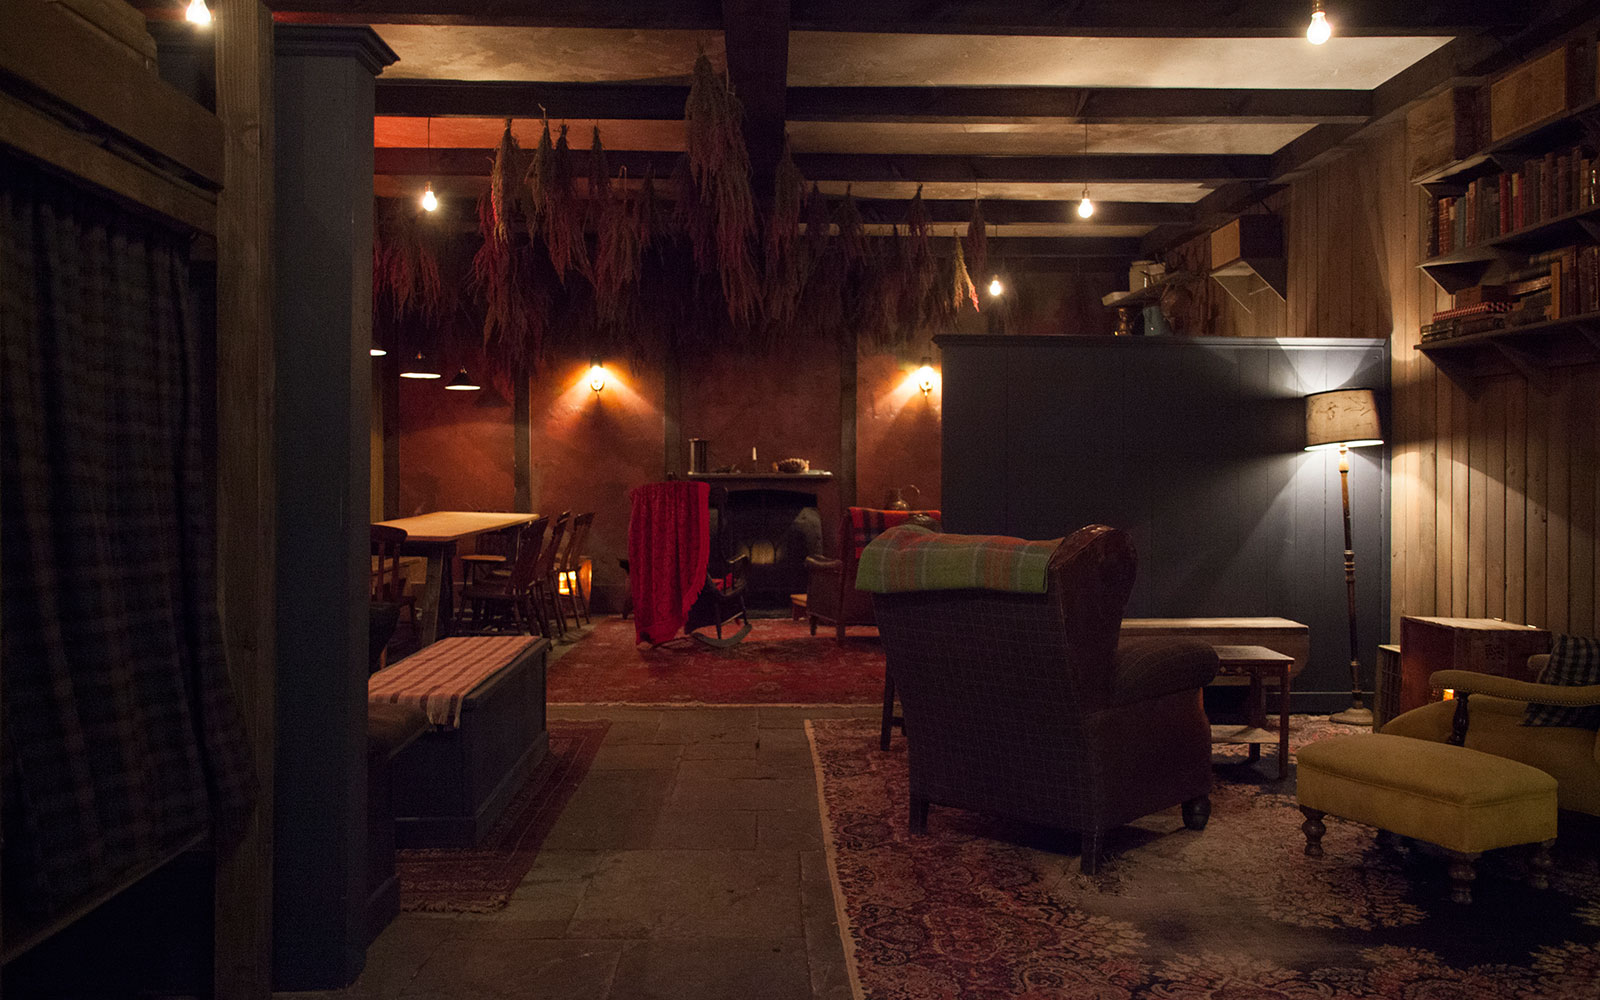 Secret Bars NYC: The Lodge at Gallow Green